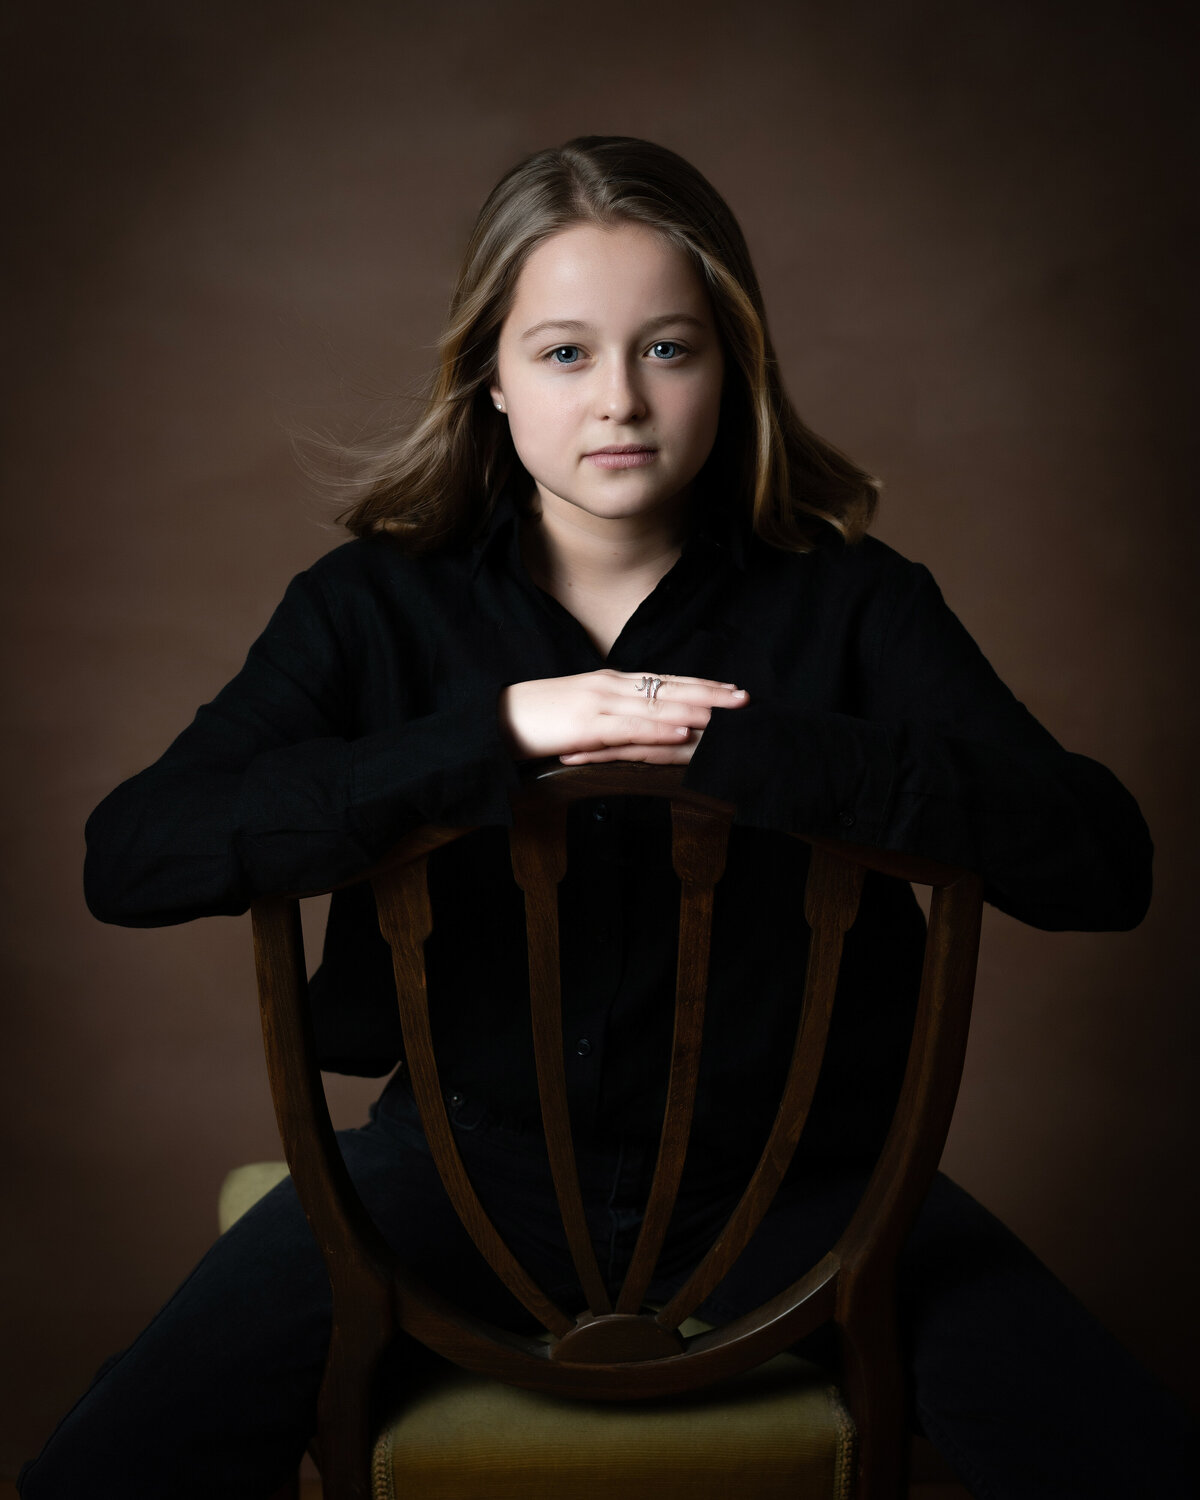 Fineart-childrenportrait-barnfotograf-fineartfotograf--2